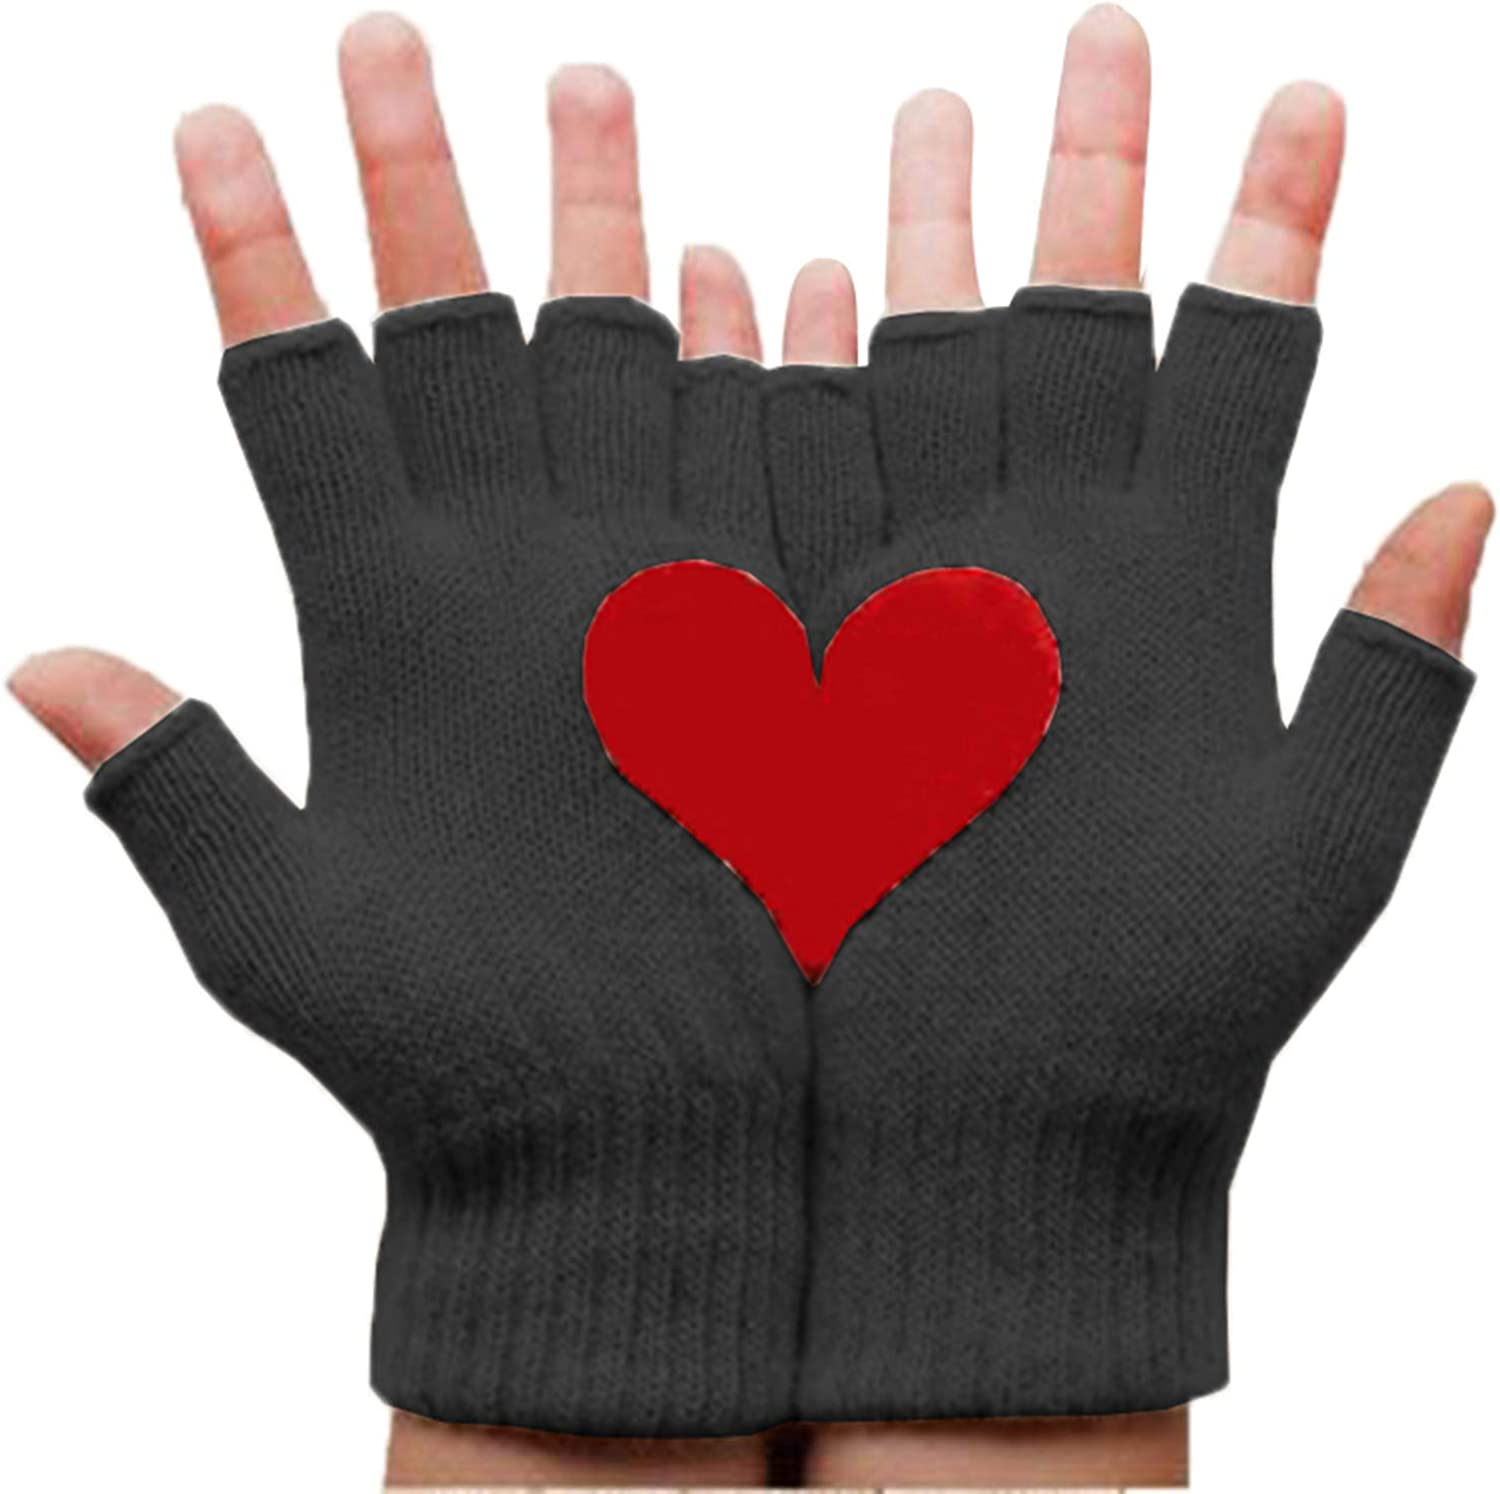 Winter Gloves for Women,Cute Warm Cat Printed Gloves for Cold Weather